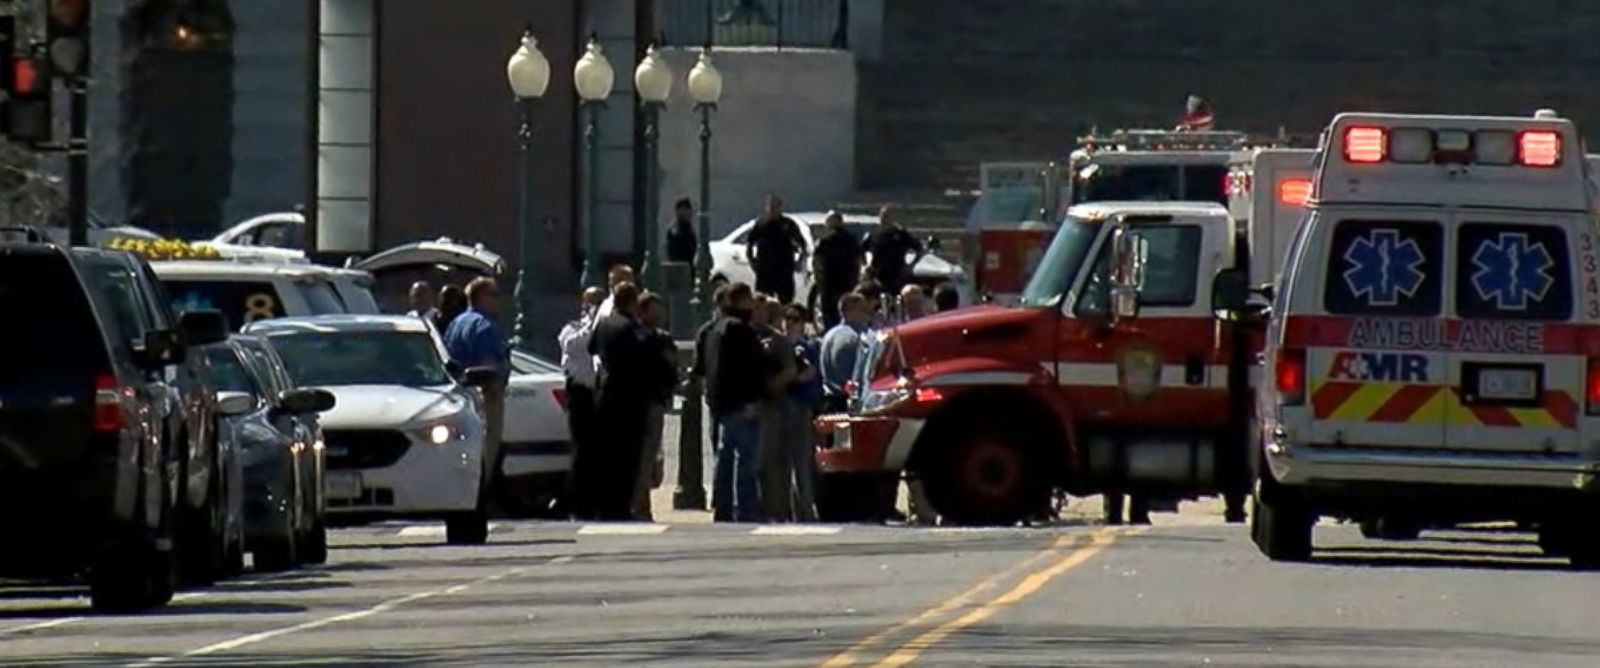 PHOTO: First responders are seen outside the U.S. Capitol in Washington, D.C. on March 28, 2016.